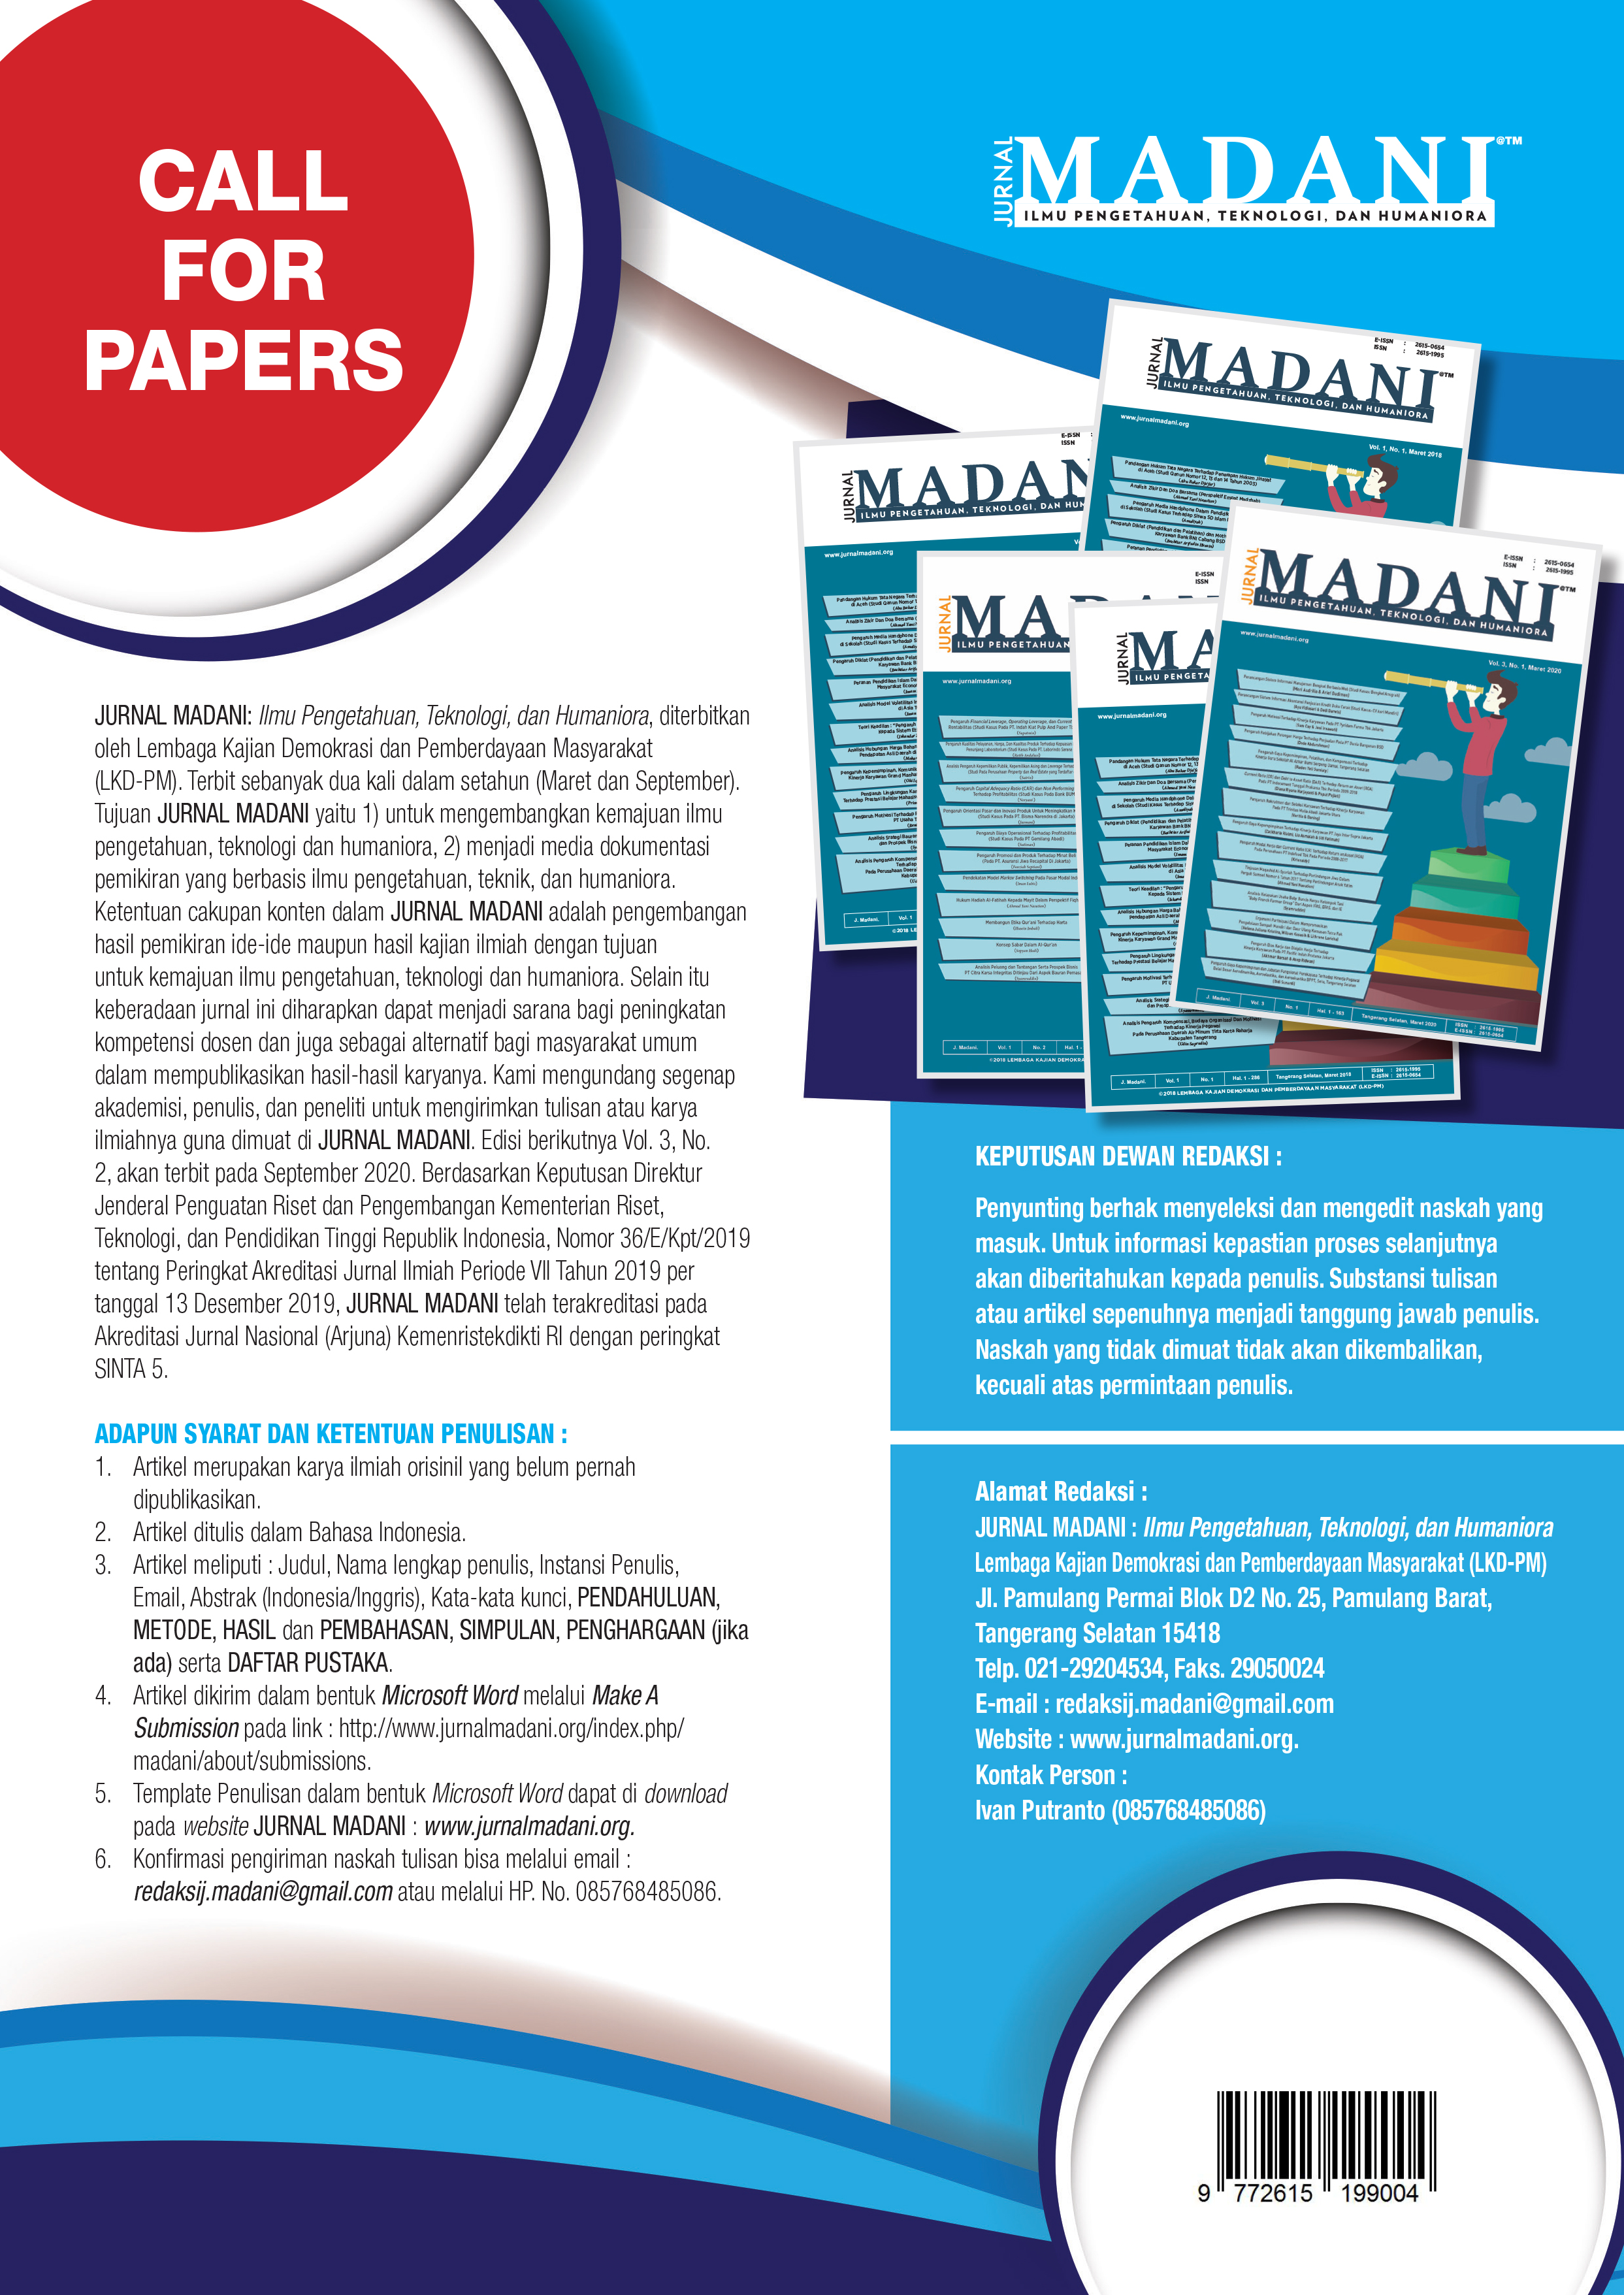 Call_For_Papers_J.Madani_Vol_._3,_No_._1